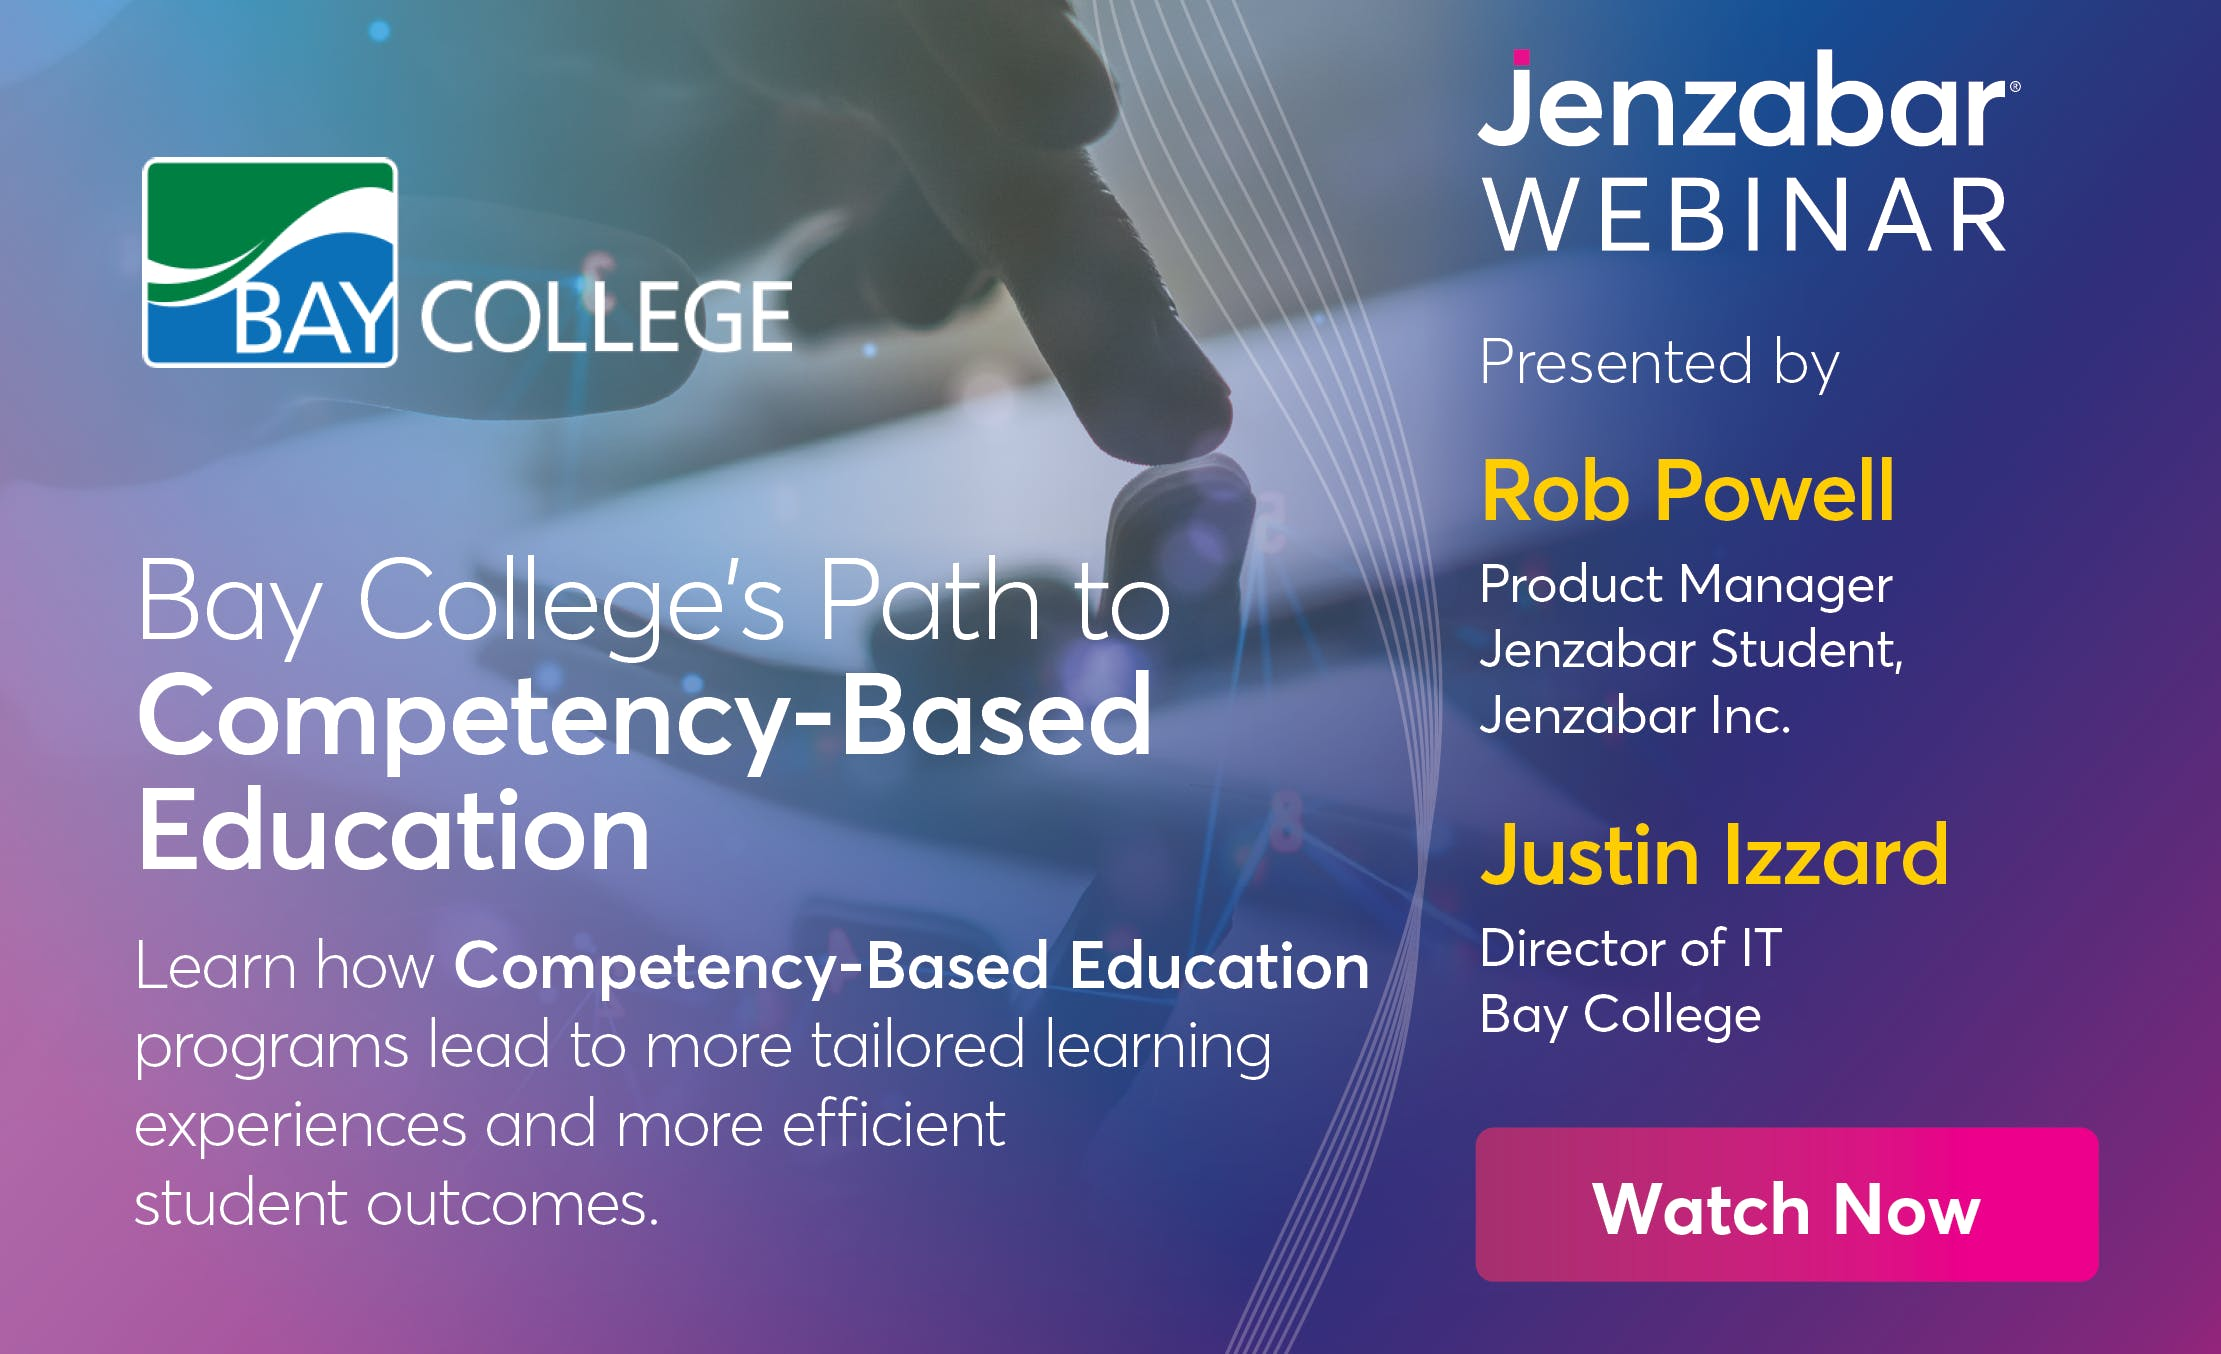 Bay College's Path to Competency-Based Education